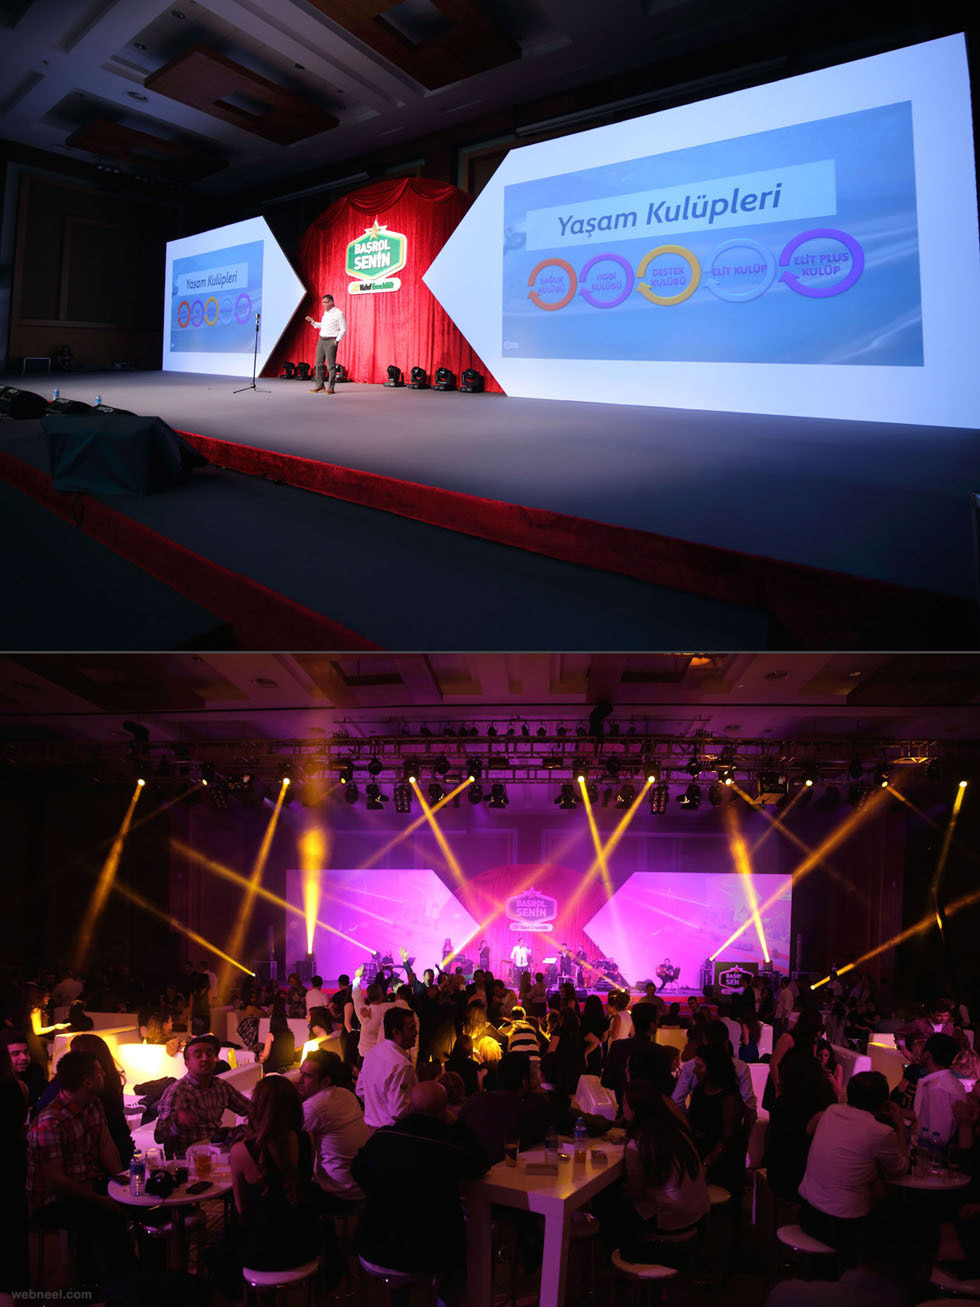 corporate event stage design by phantom